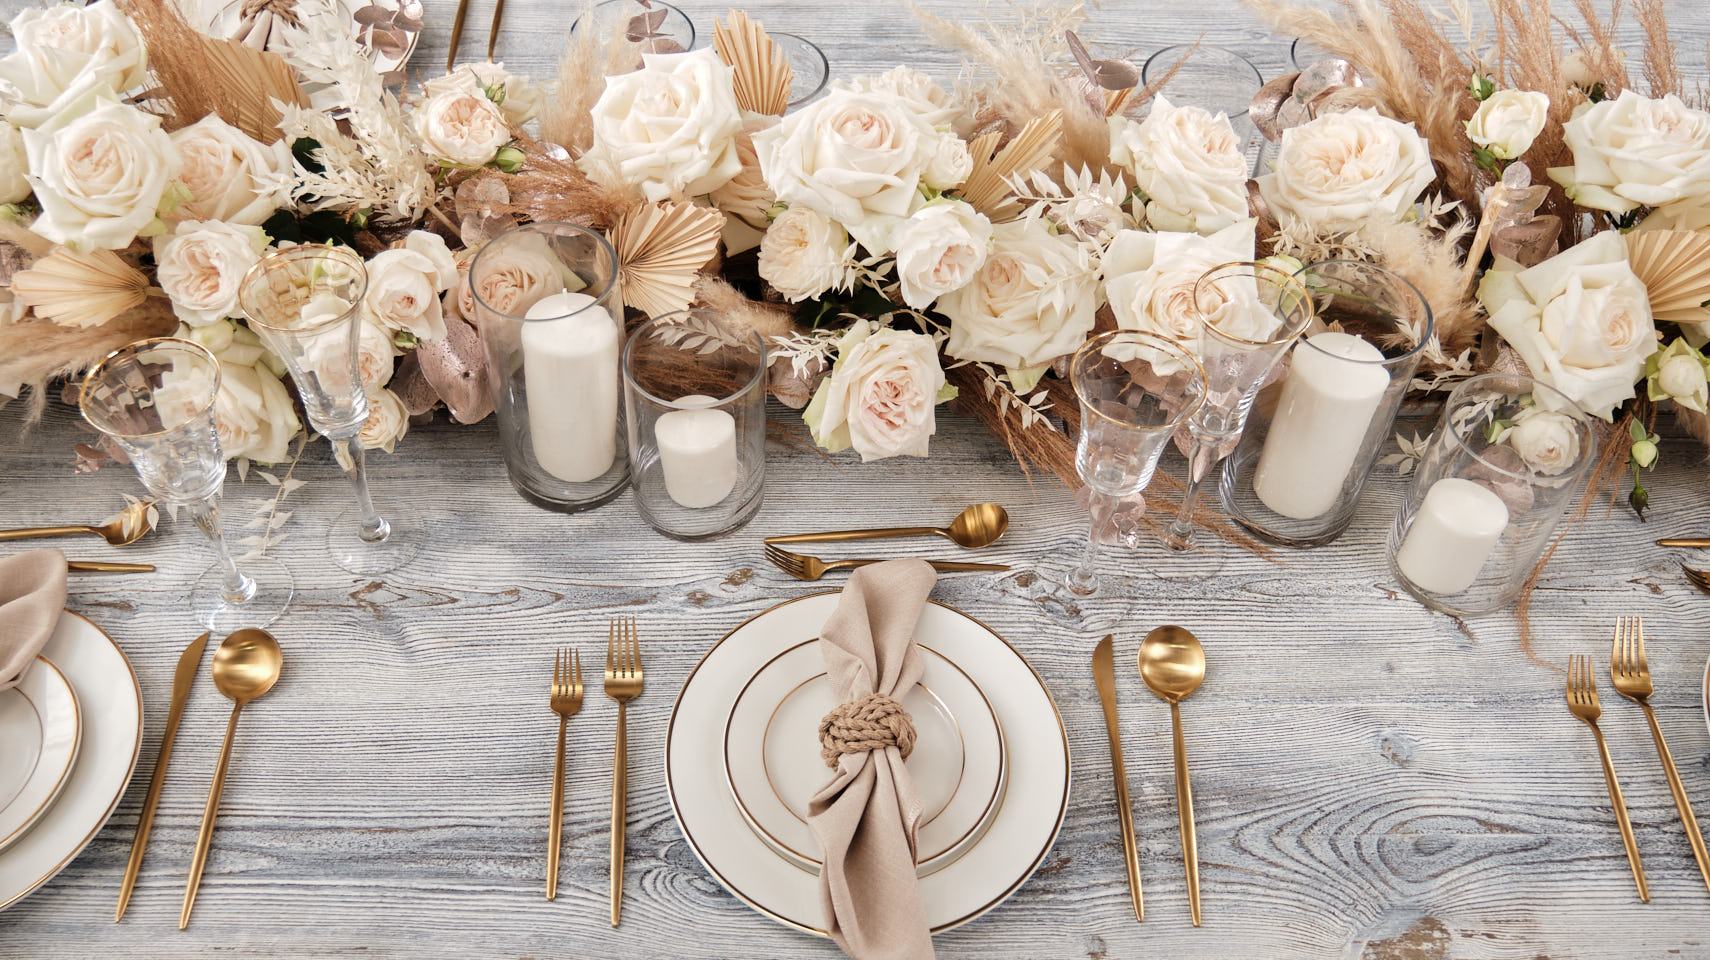 Rustic Style Event Setup